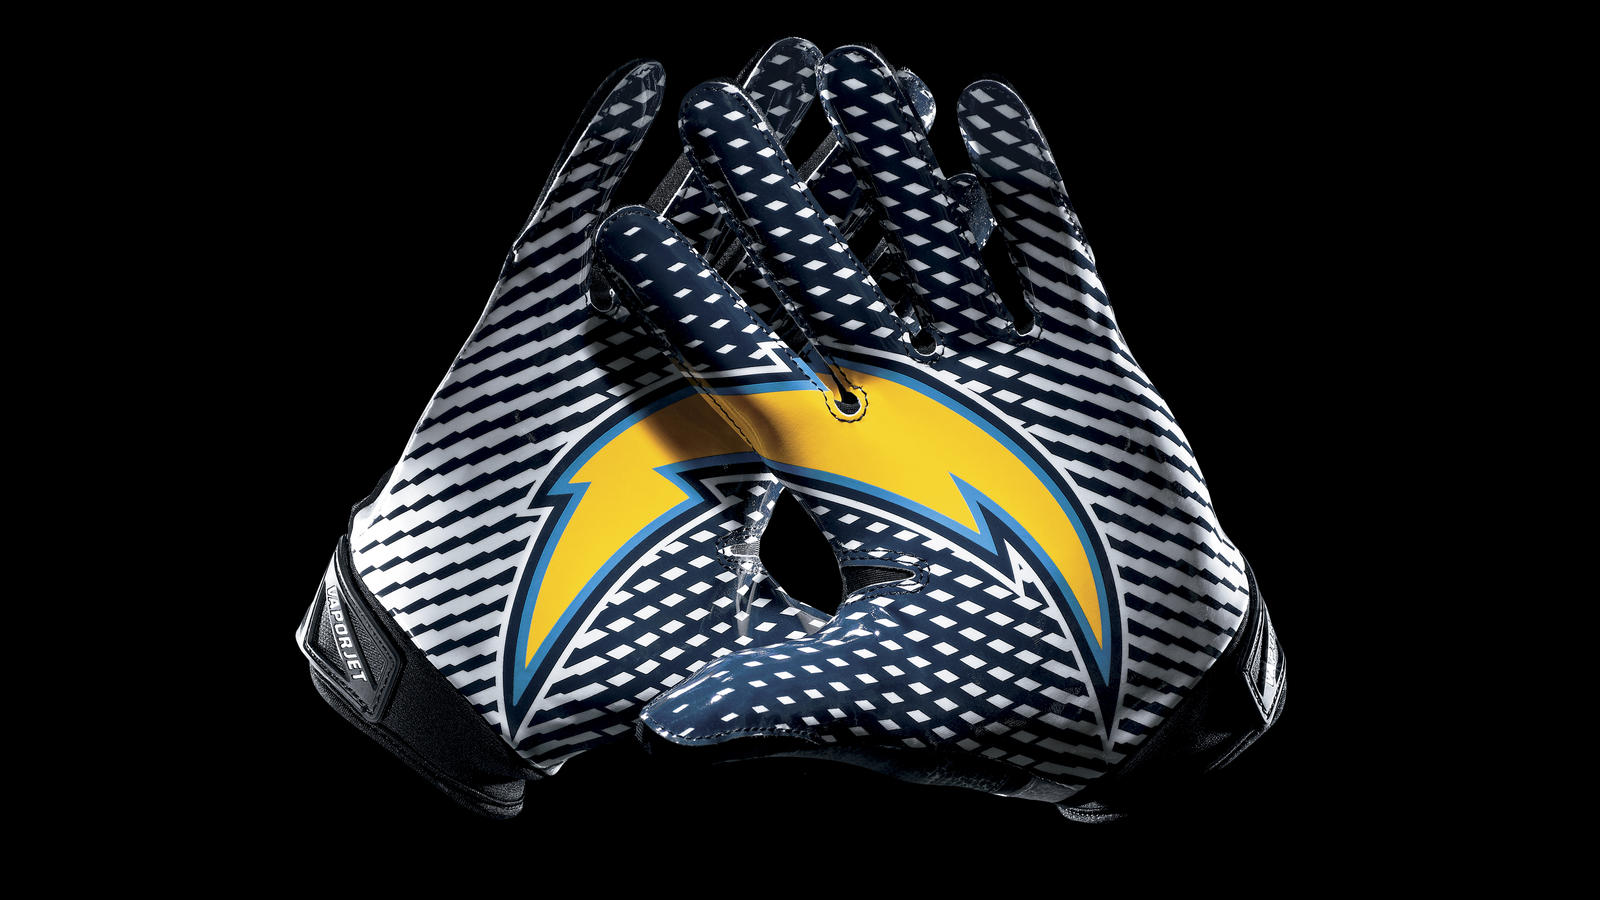 San diego chargers 2012 nike football uniform nike news share image voltagebd Images